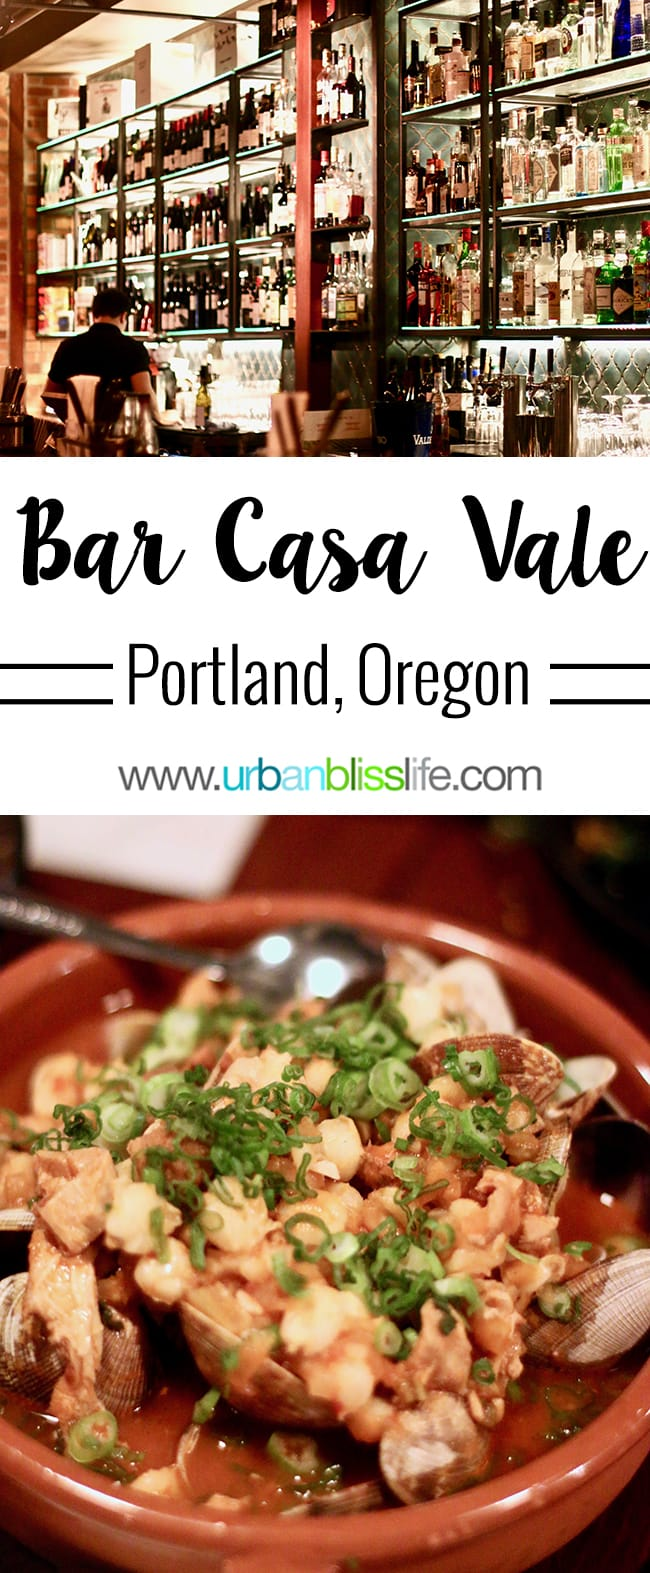 Bar Casa Vale Portland, Oregon Spanish Tapas Bar and Restaurant